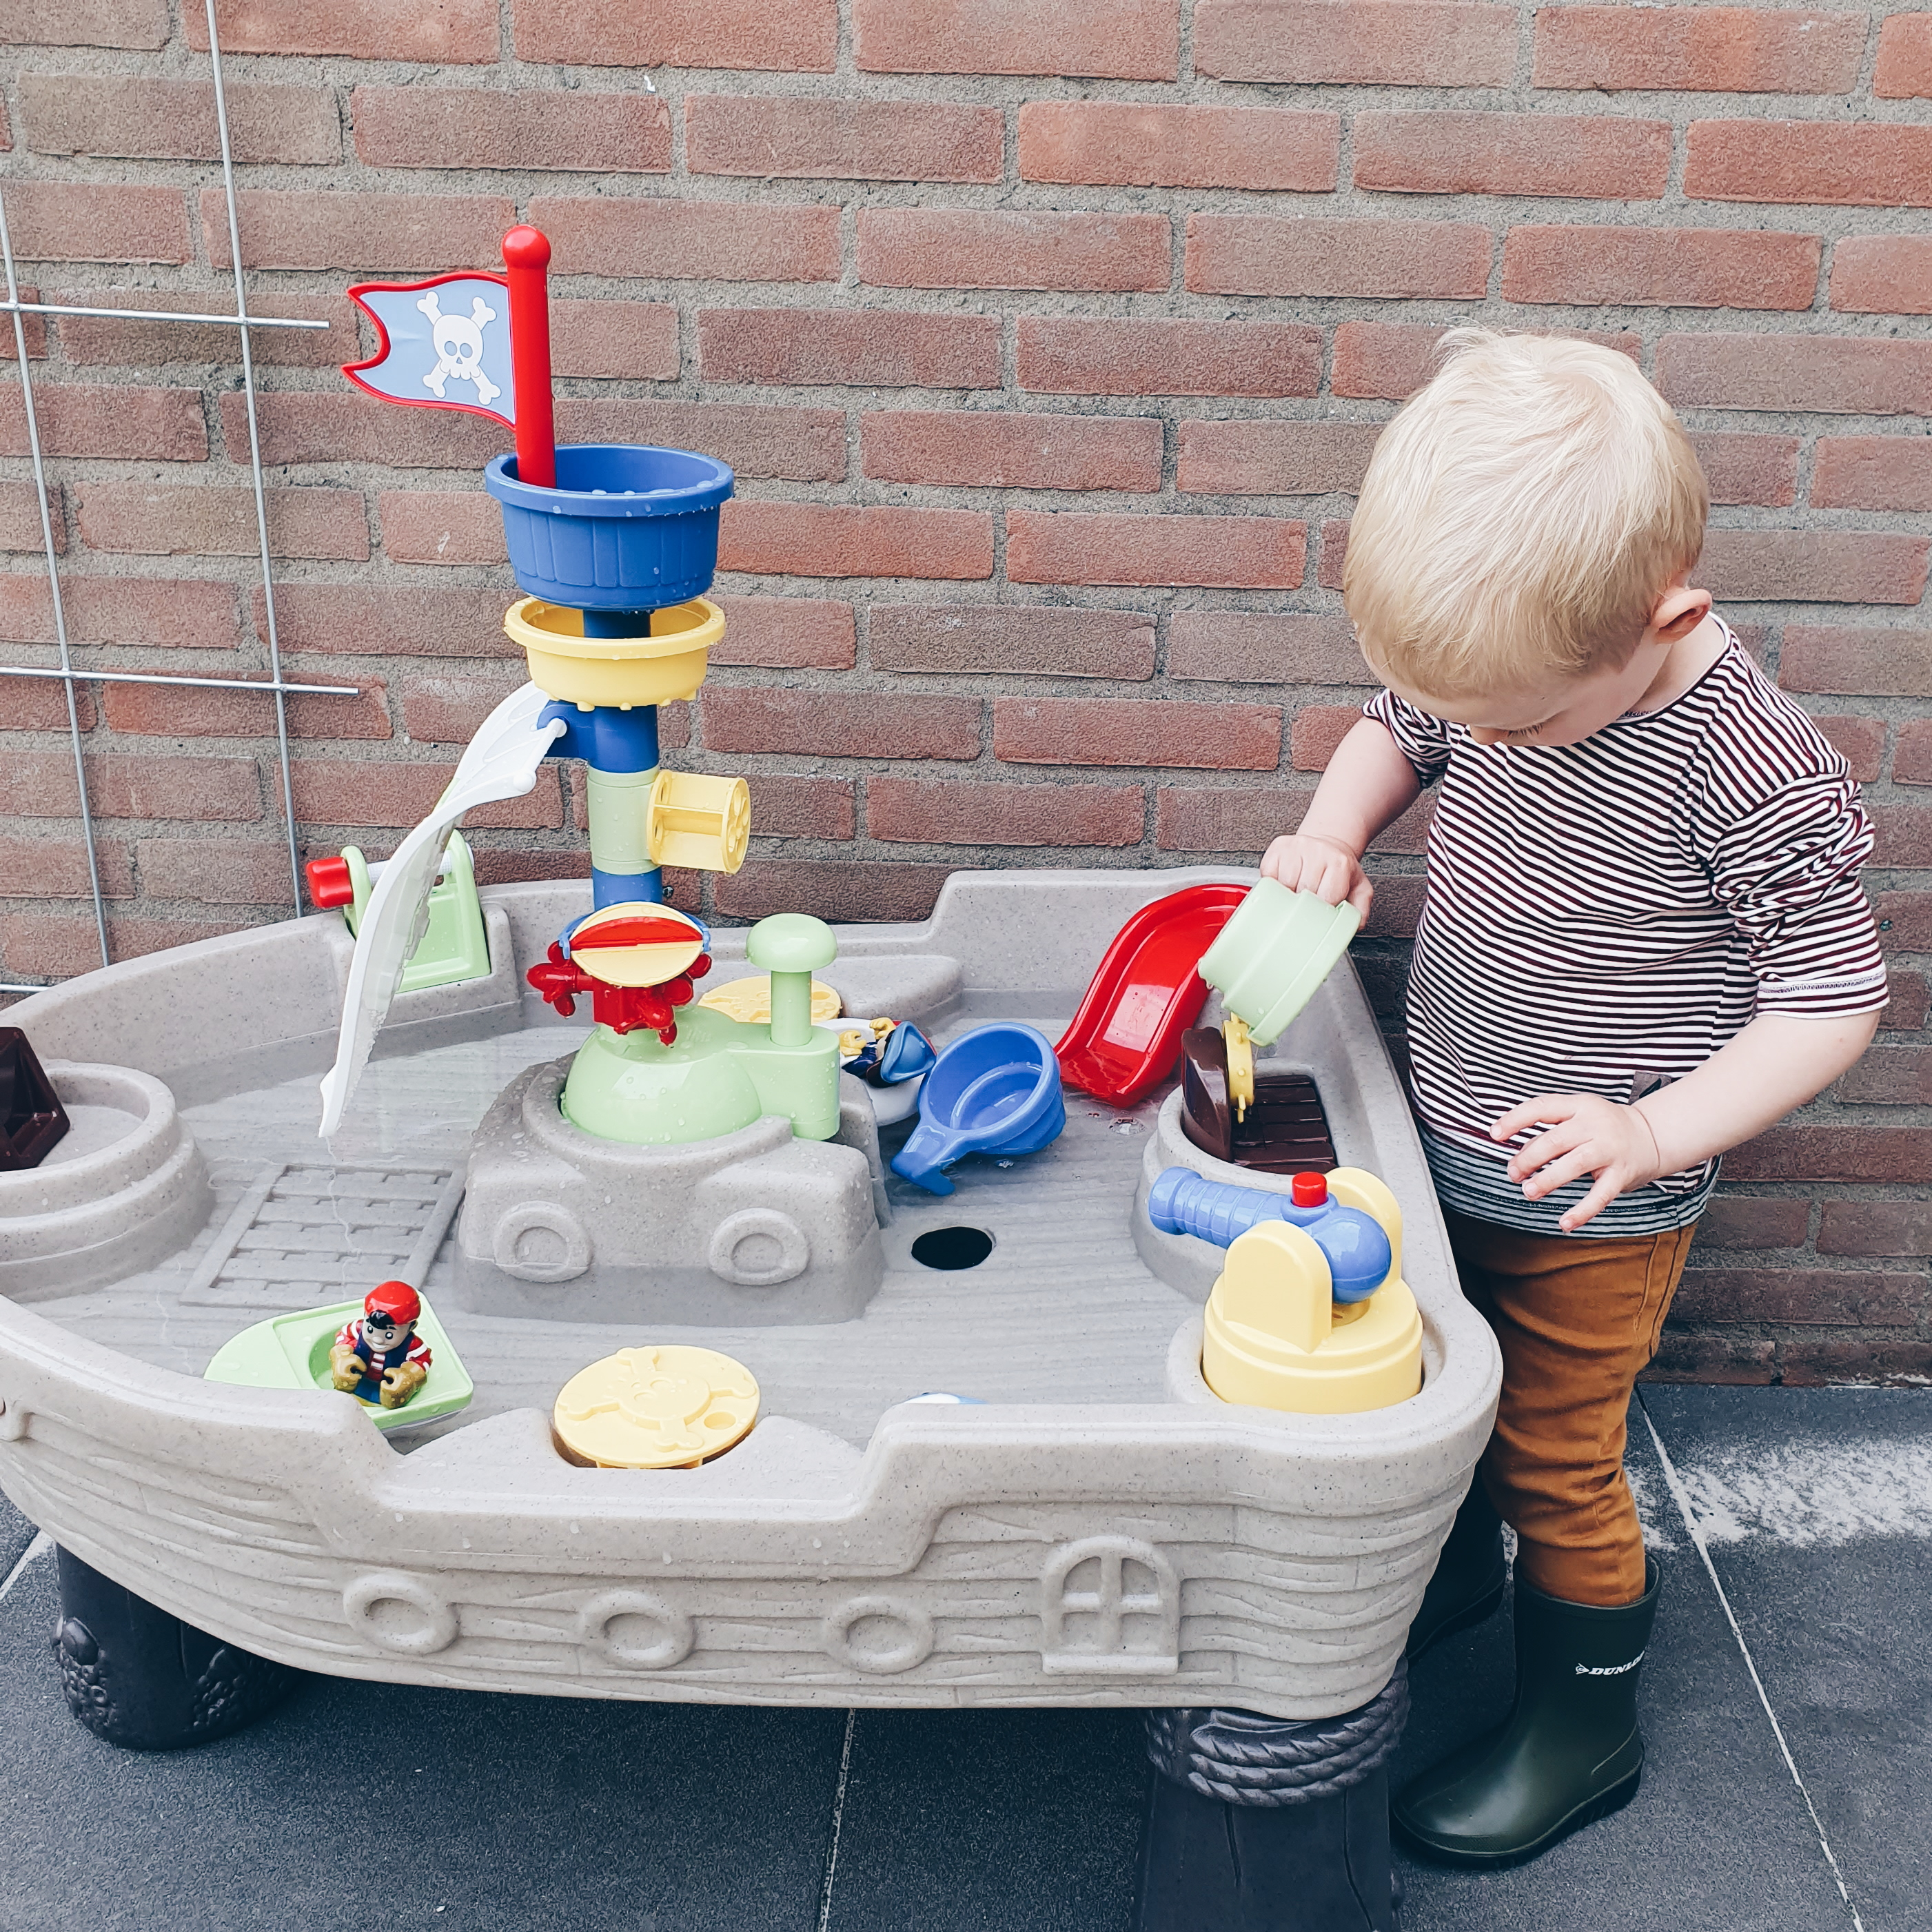 Waterpret met de Watertafel Piratenboot van Little Tikes